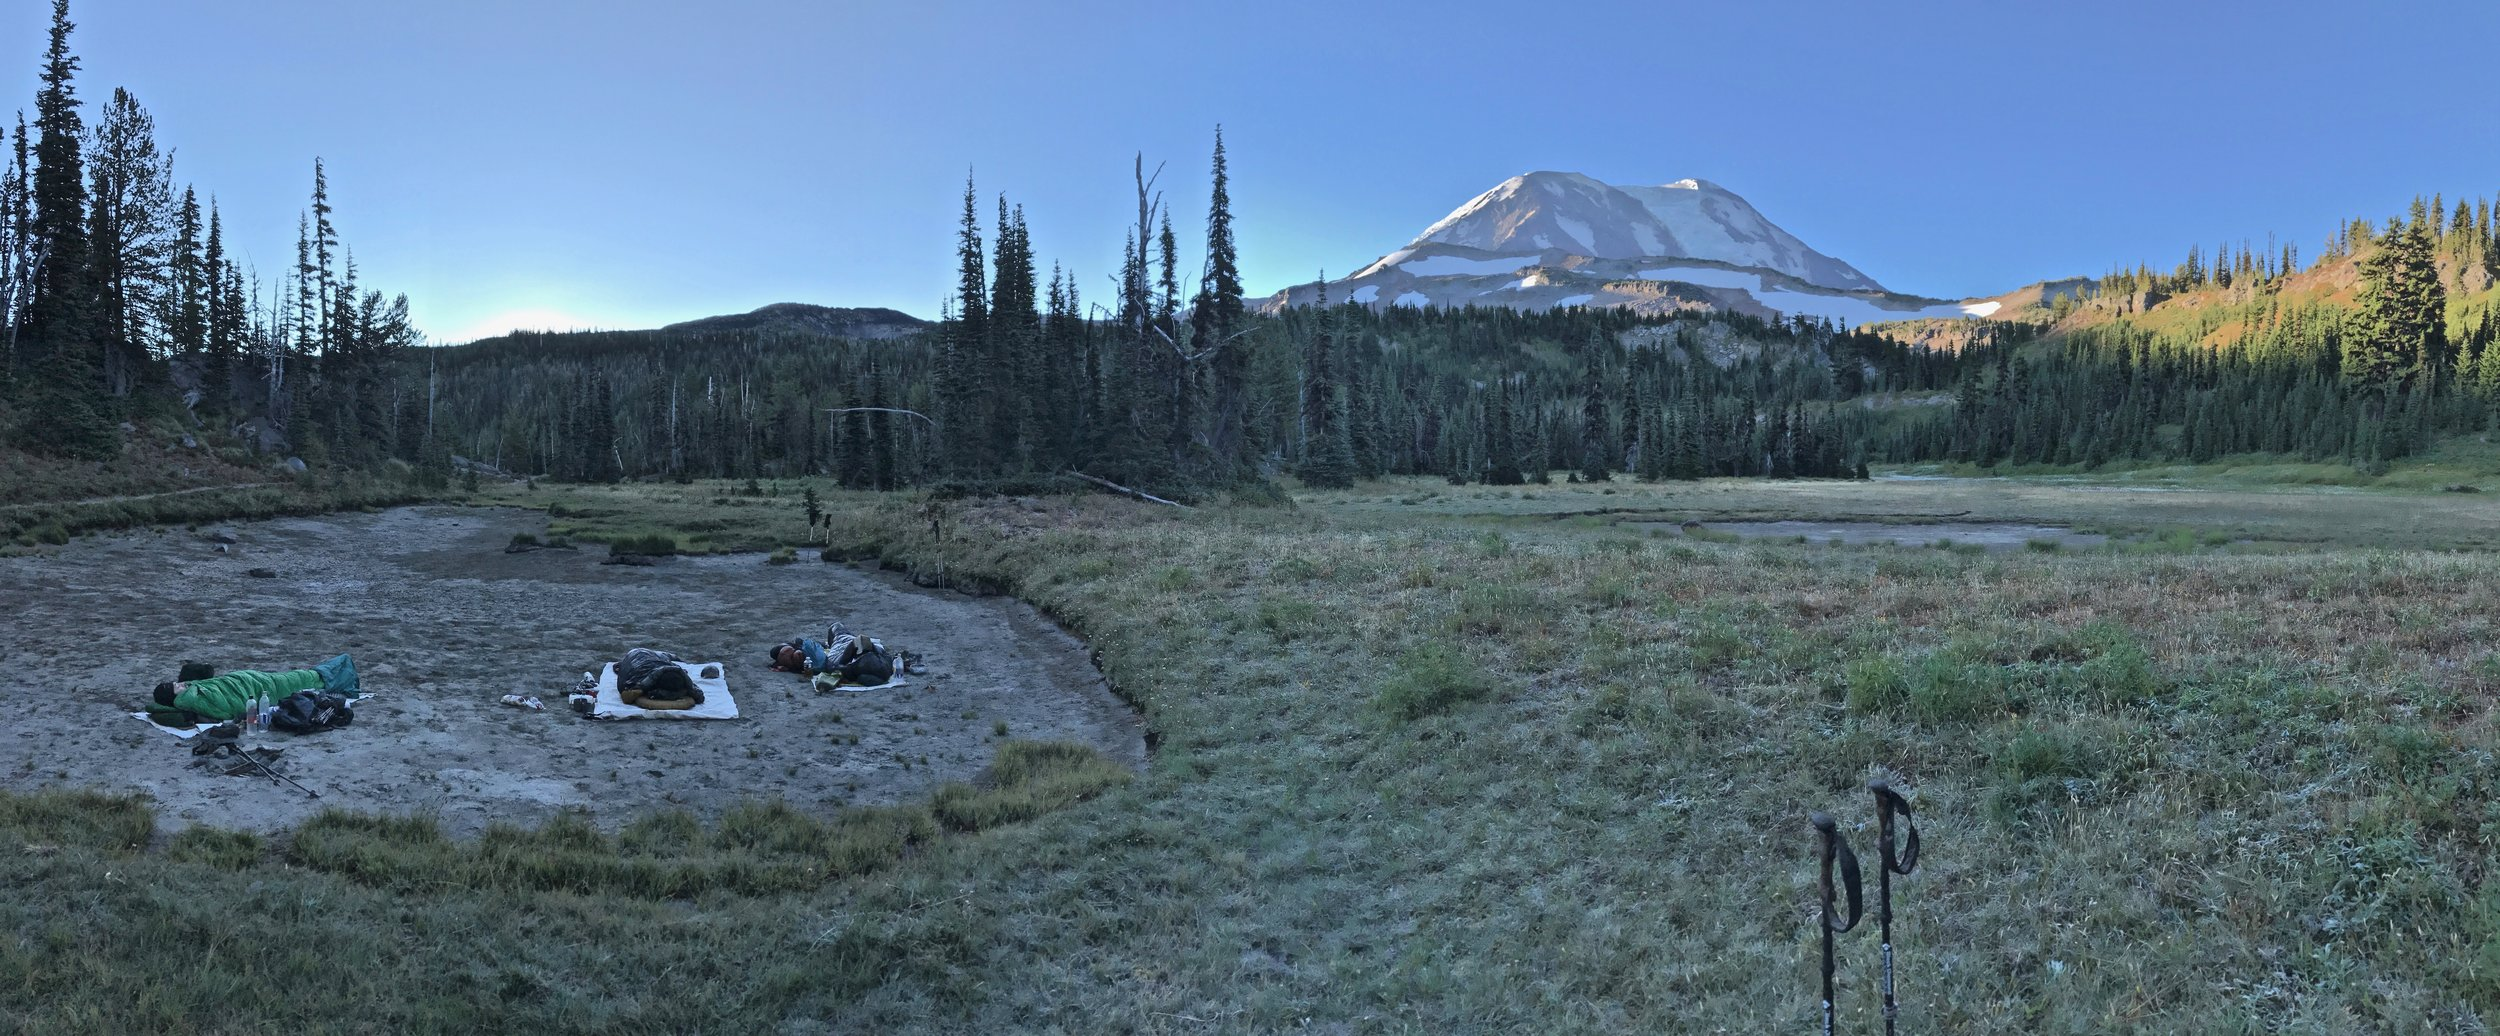 Sam, Vice, and Boathouse waking up under Mount Adams